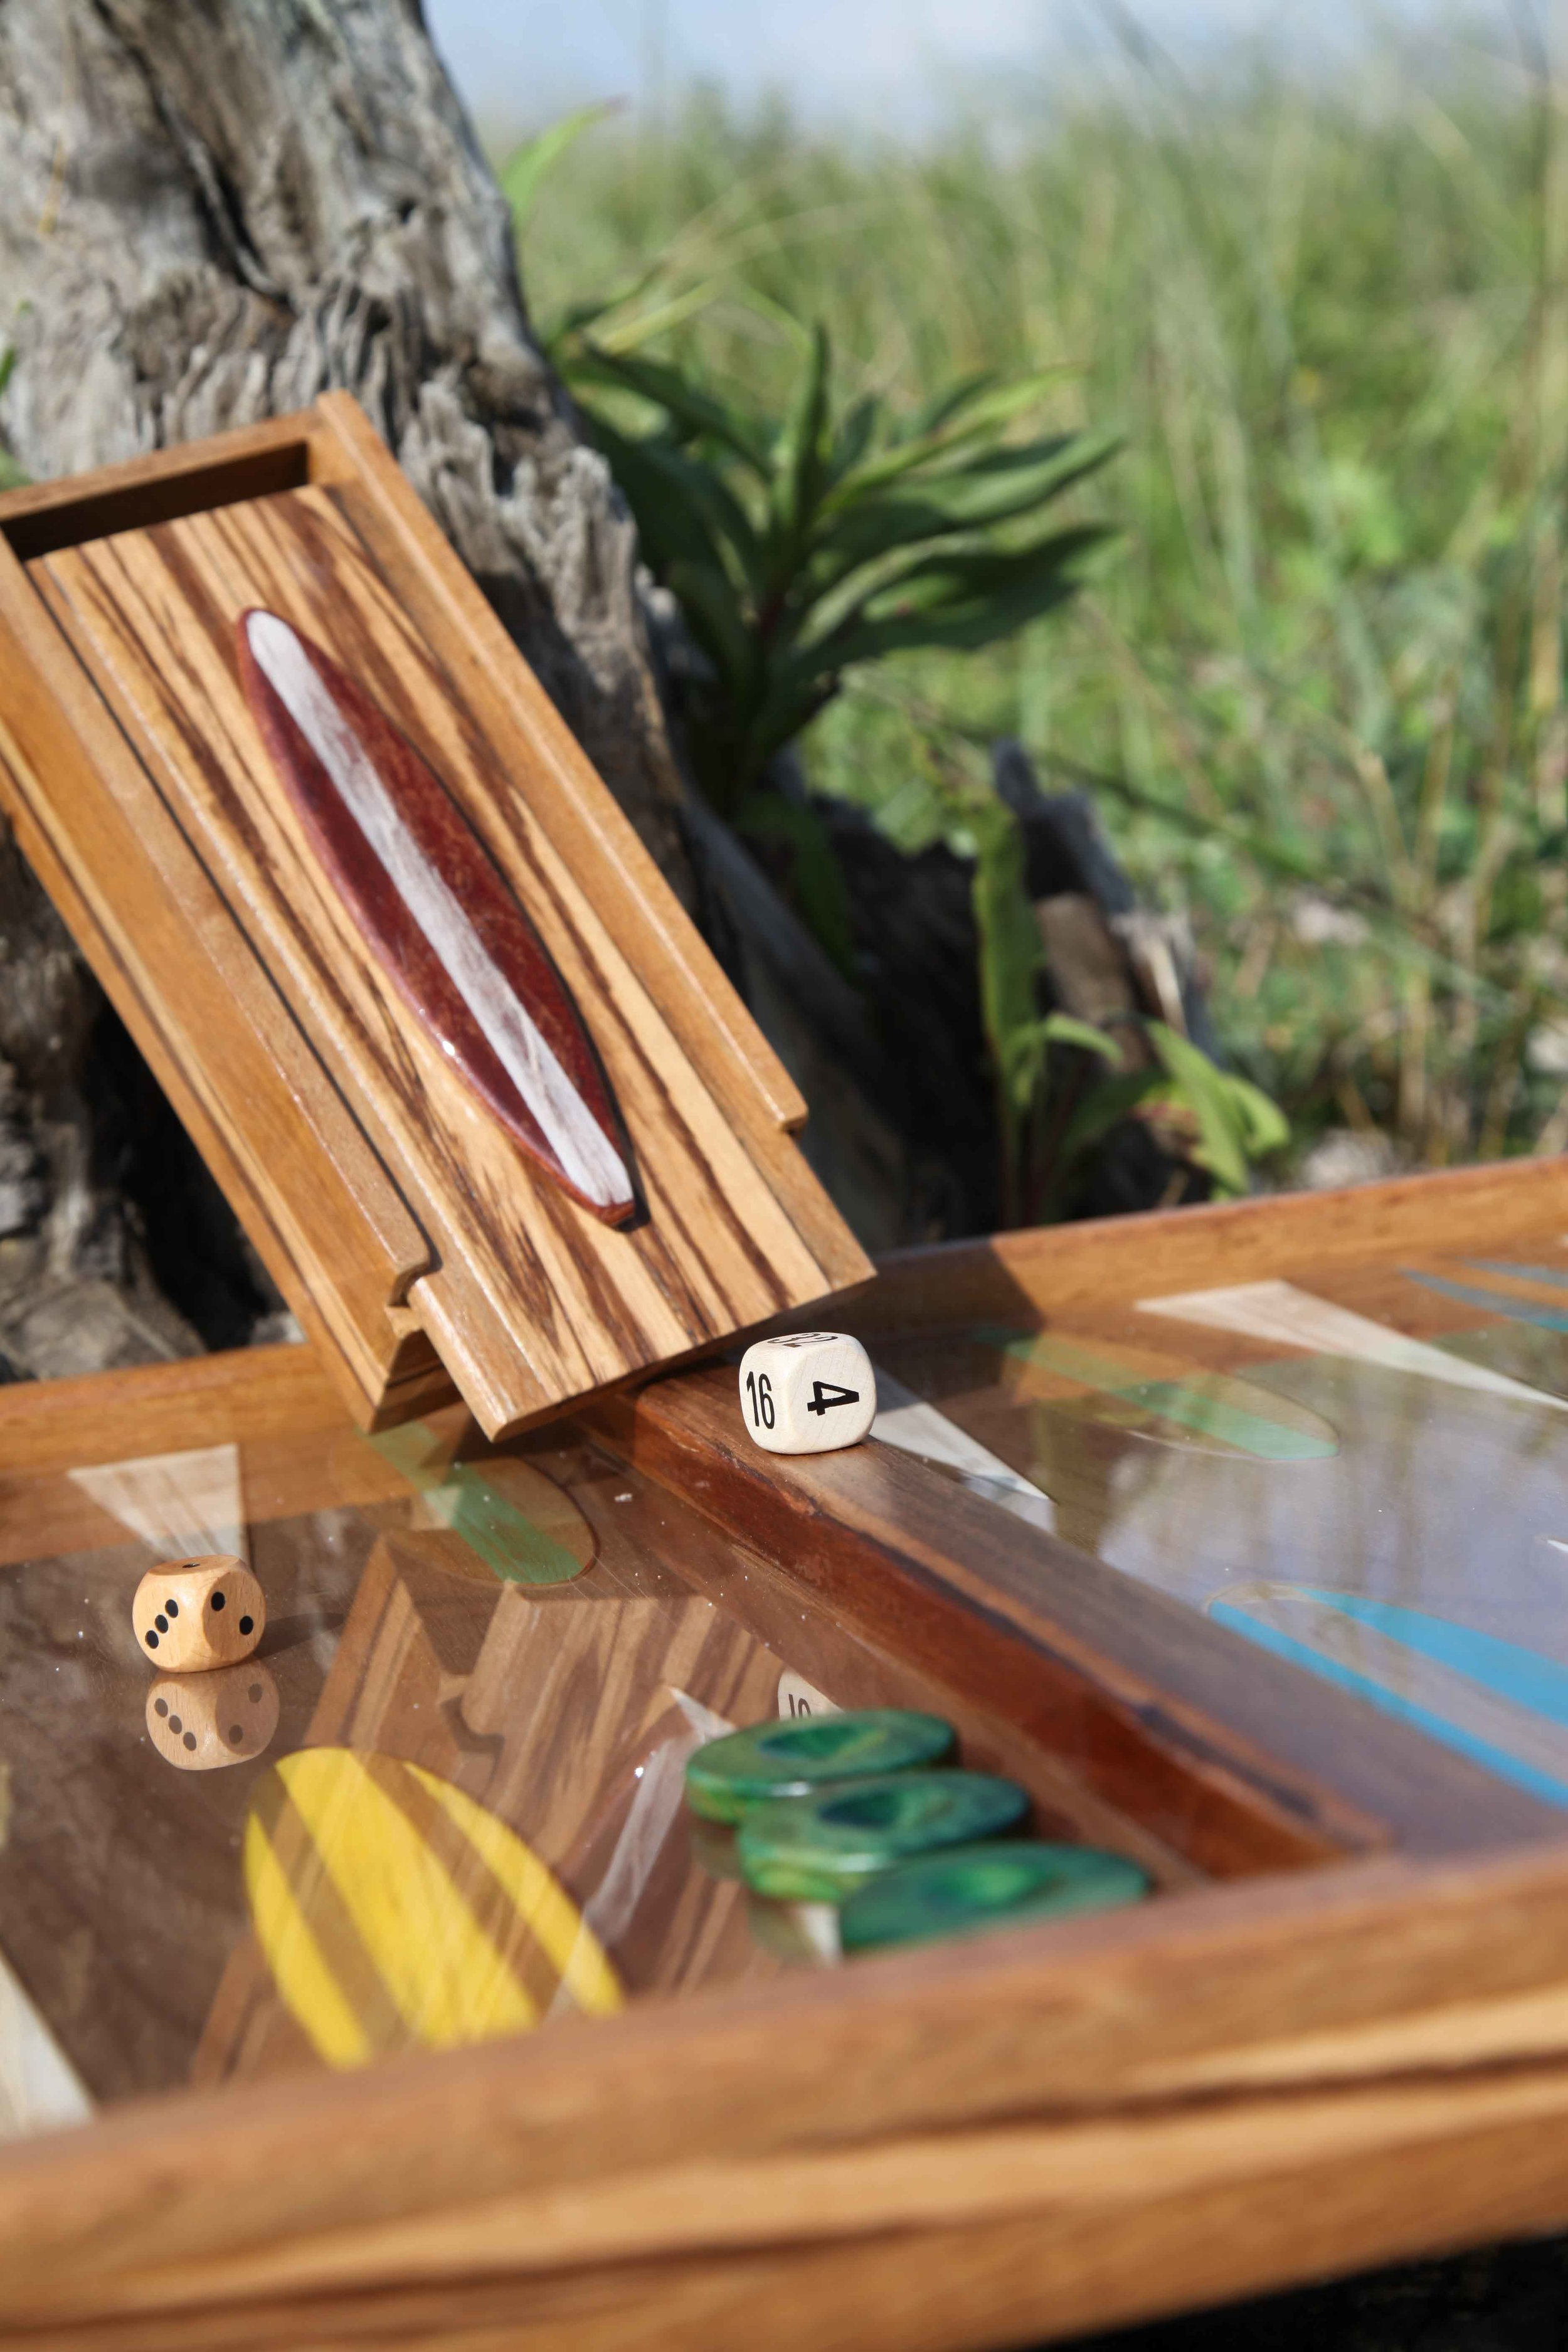 Playing checkers box for Big Sur: solid walnut with hand insets of African Zebrawood.